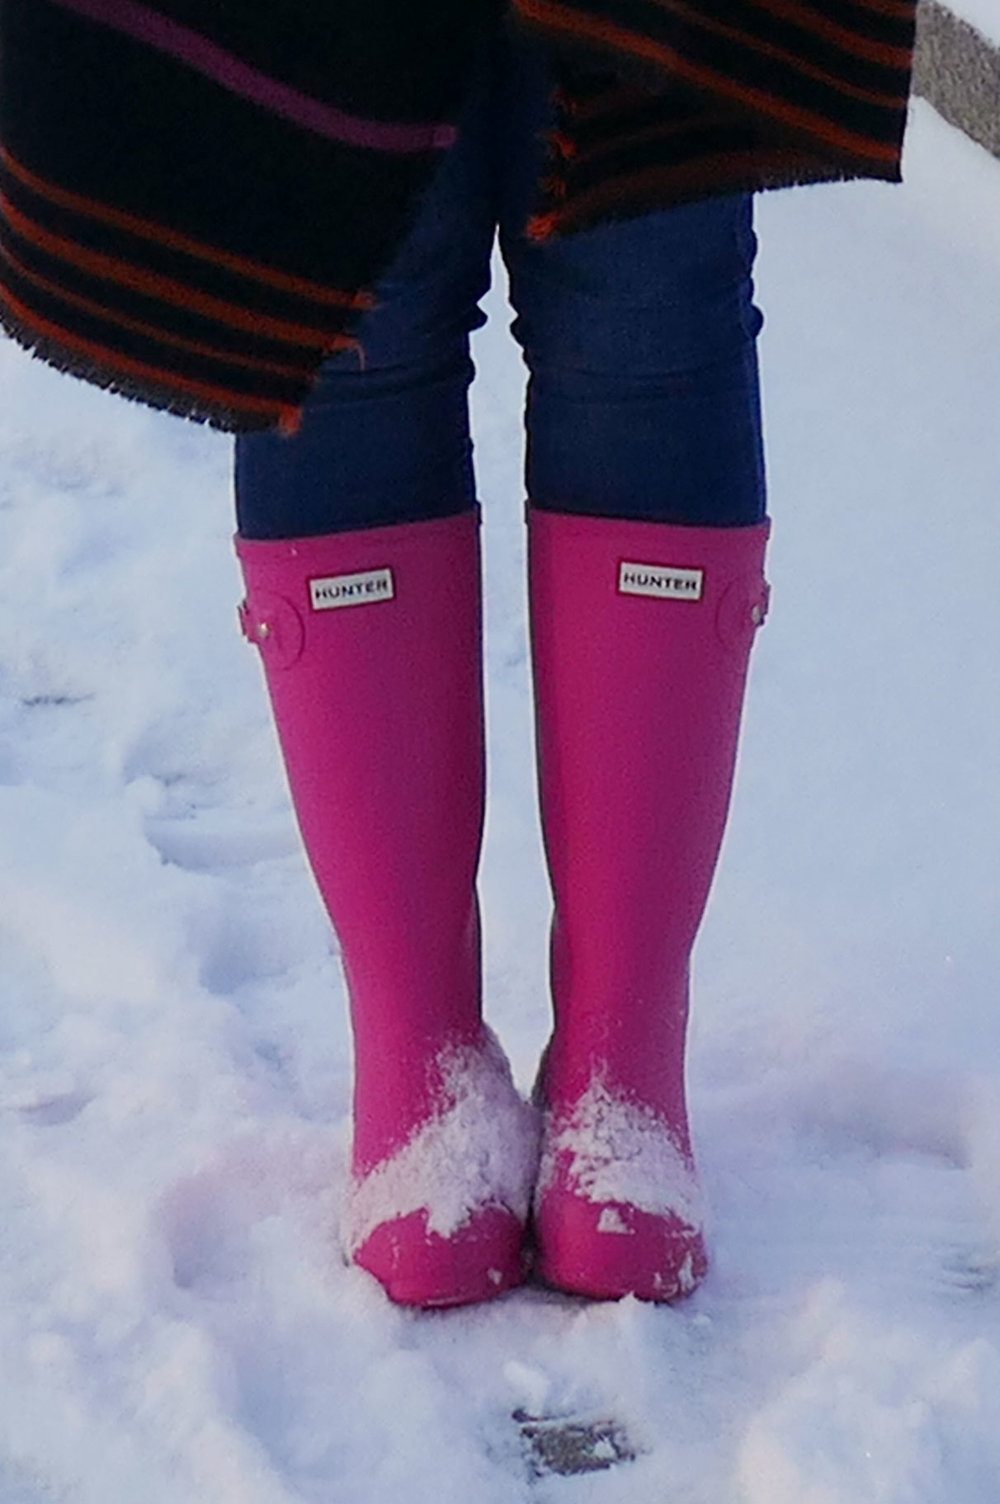 Hooray_snow_gumboots.jpg